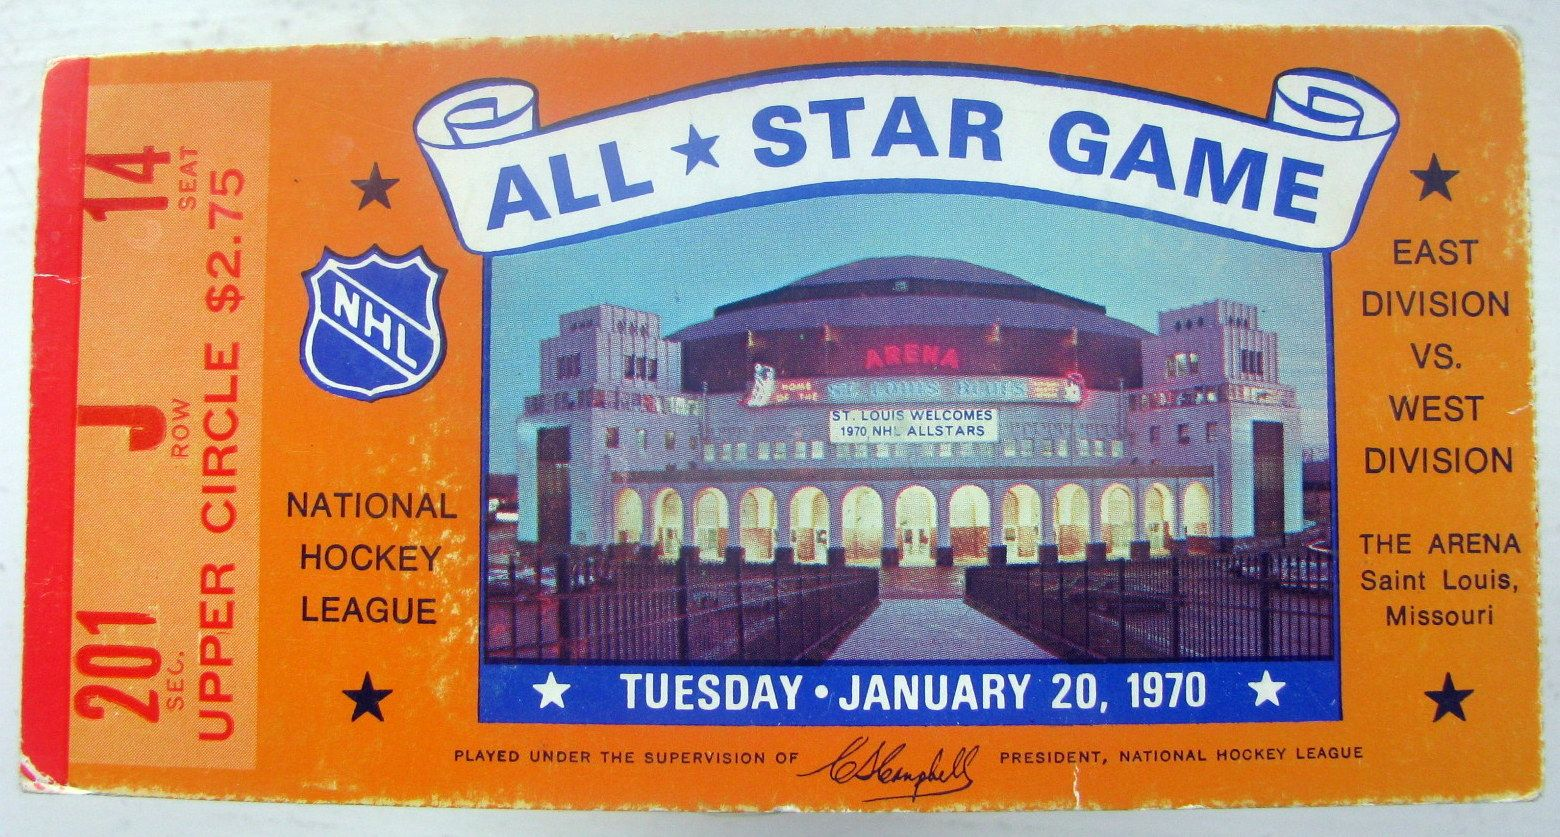 NHL All Star Game Tickets | 2021 Game in Sunrise, FL ...